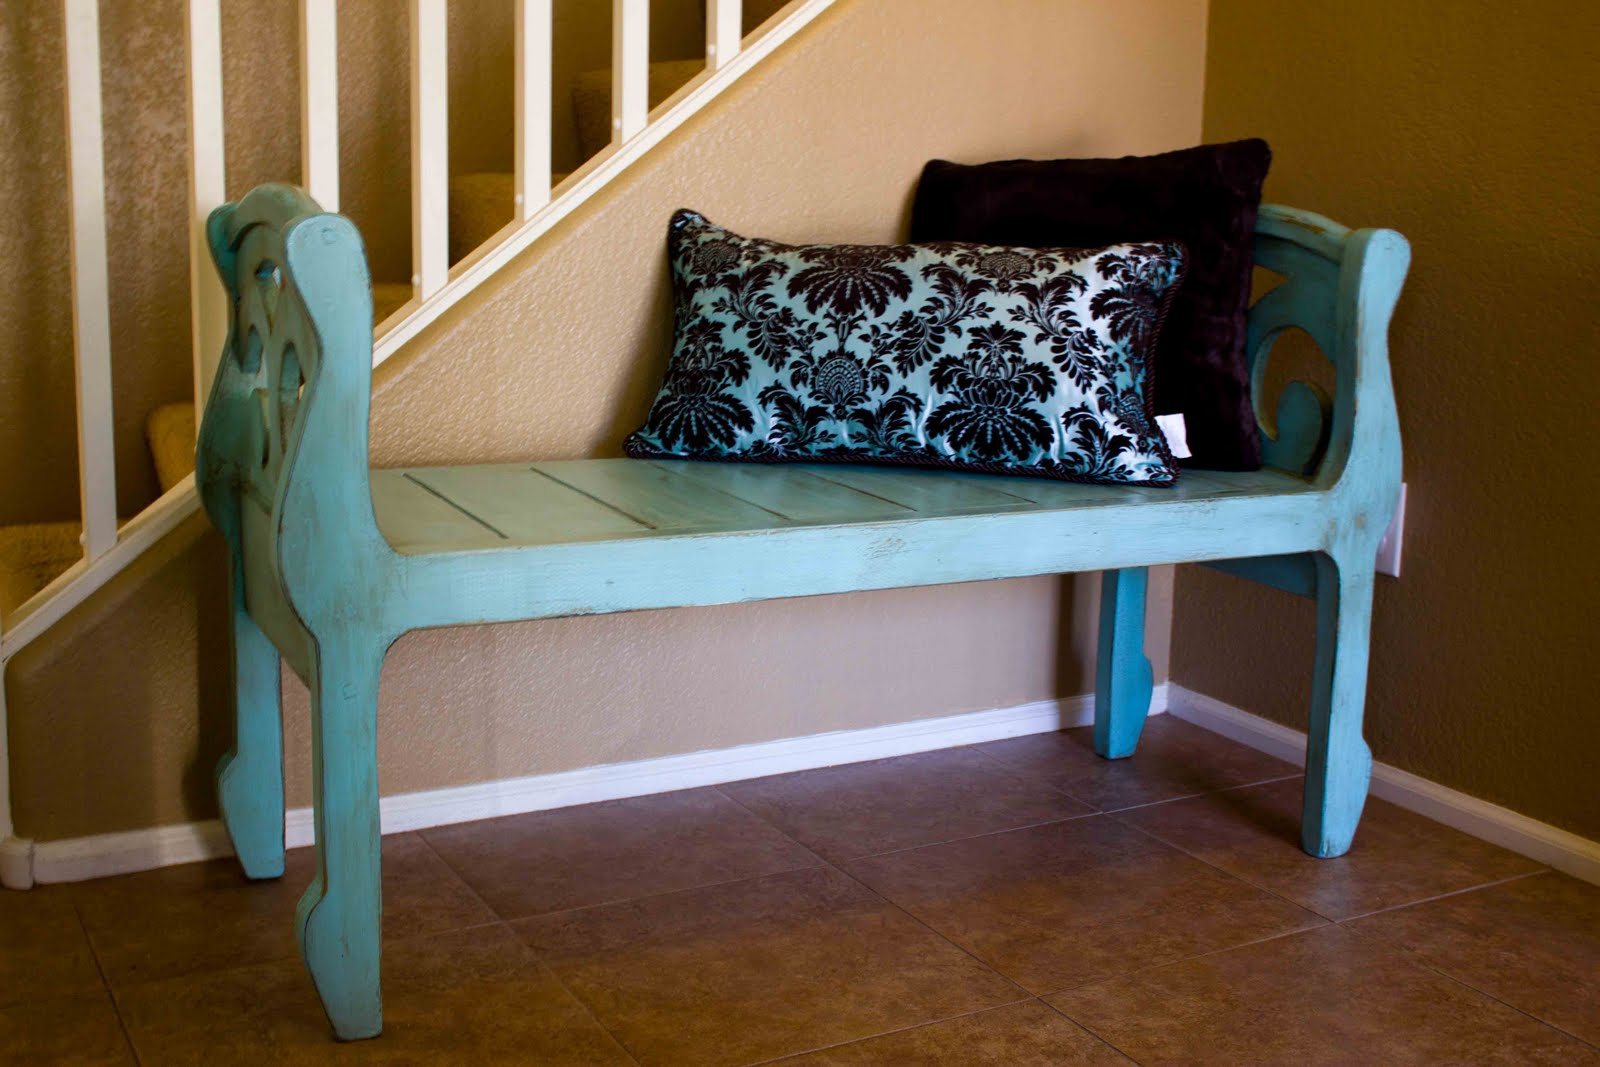 New To You Entryway Or End Of Bed Bench